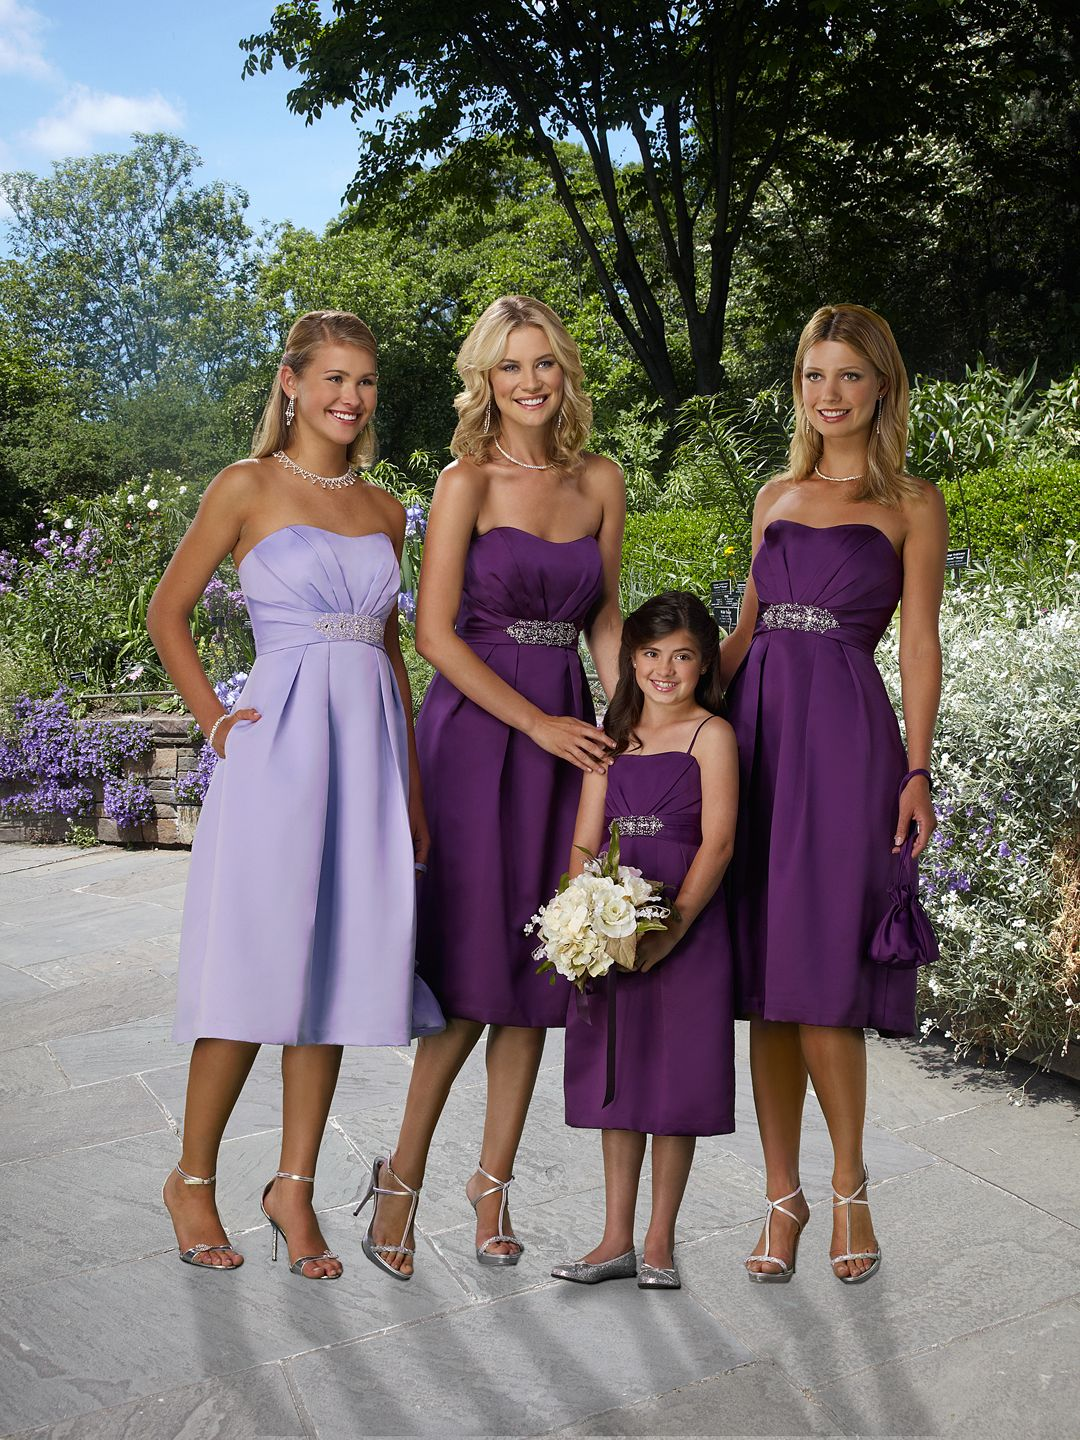 1000  images about Bridesmaids on Pinterest - Orange flowers ...